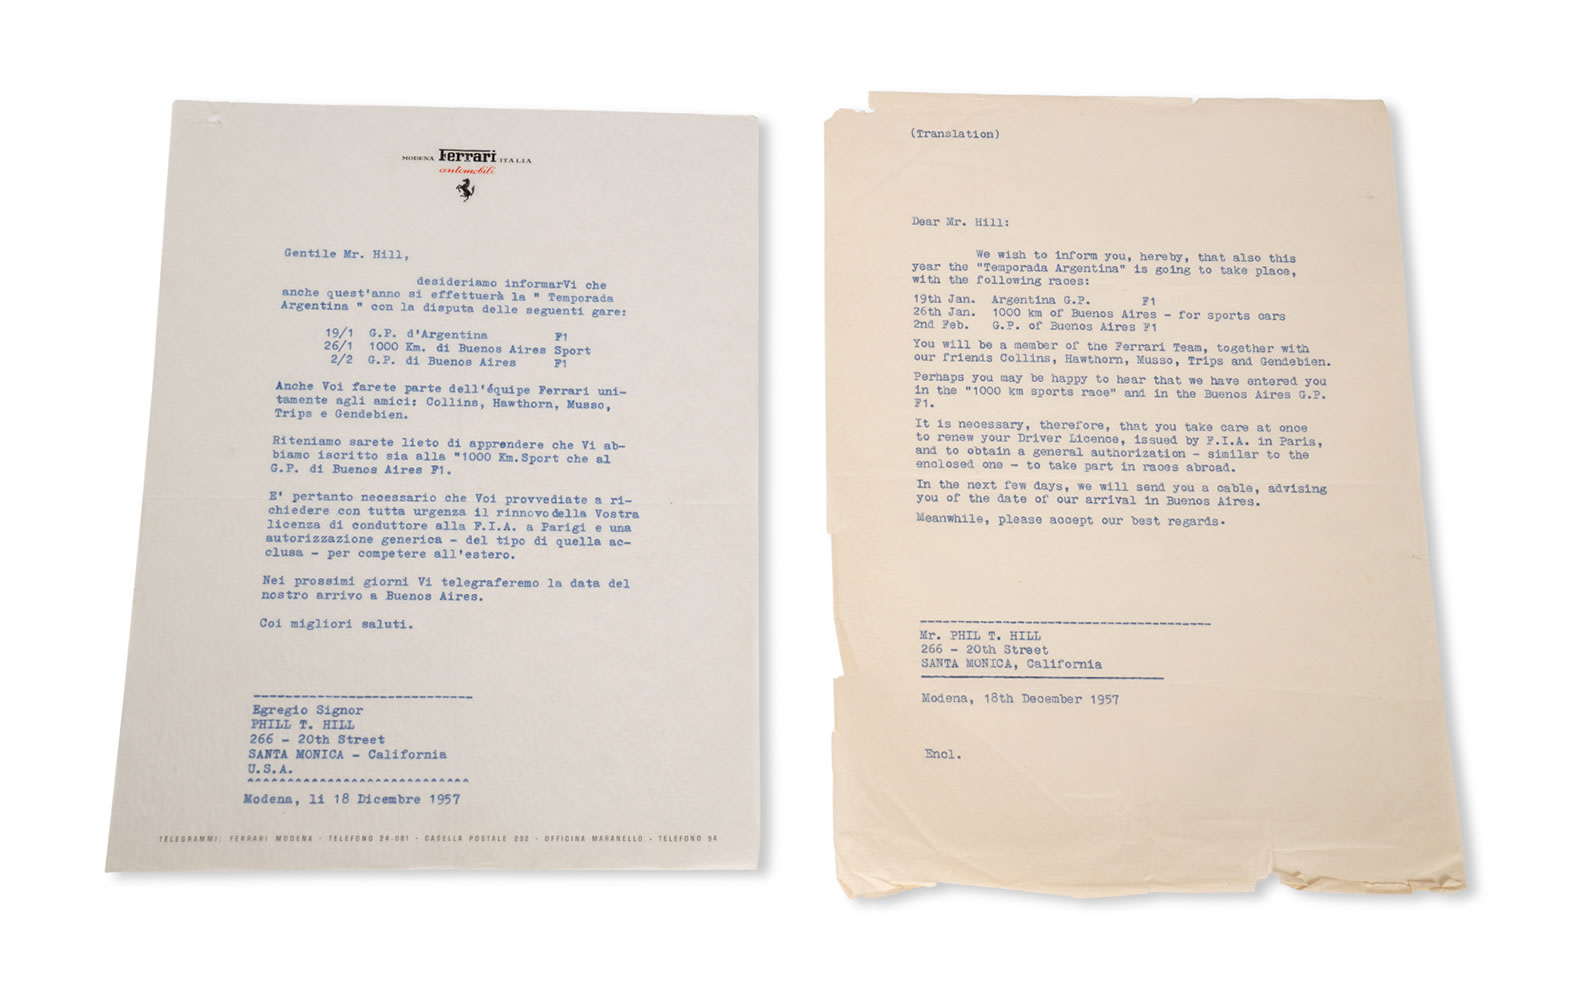 Scuderia Ferrari Engagement Letter for the 1958 Argentina Grand Prix and Buenos Aires 1000 Km Sports Car Race